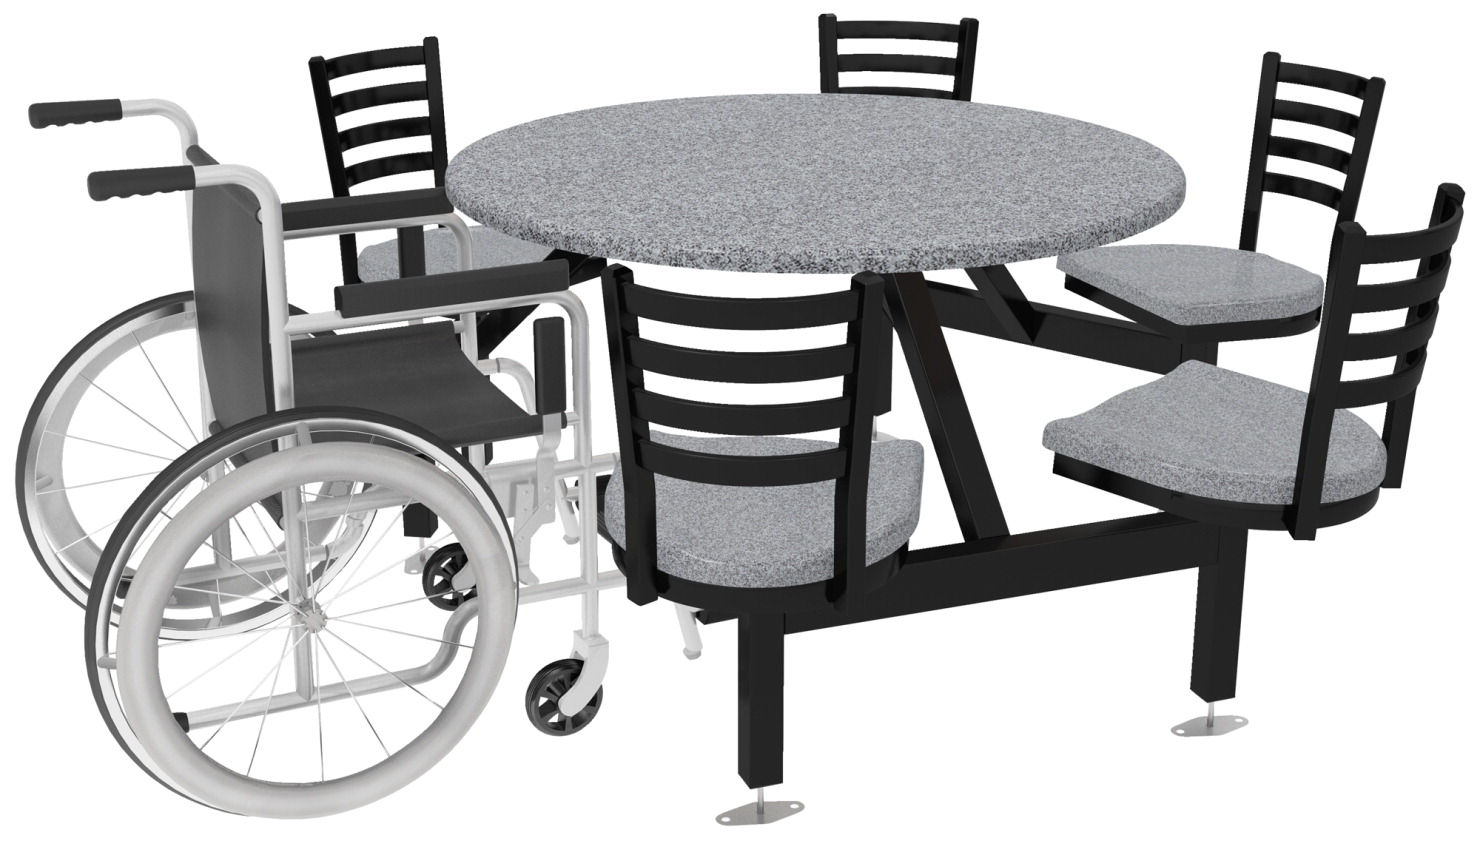 Palmer Hamilton Round Outdoor Table with Anchors, 5 Seats 1 Wheel Chair,  Various Options - Palmer Hamilton Round Outdoor Table With Anchors, 5 Seats 1 Wheel